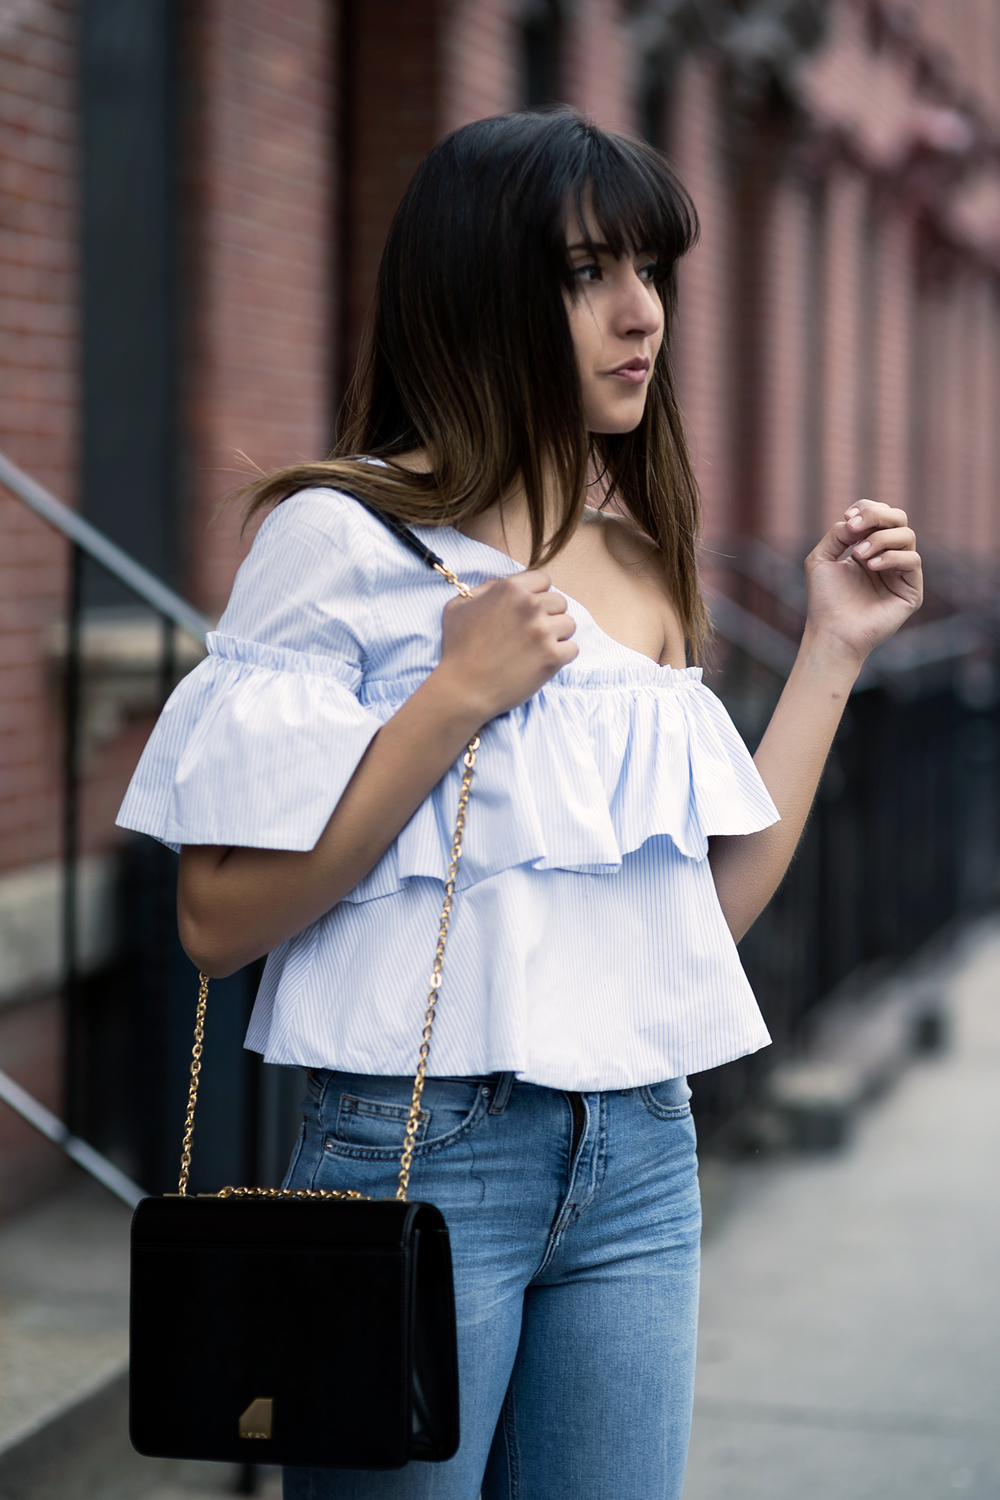 tendencia-off-the-shoulder-ruffles-blogueira-raquel-paiva